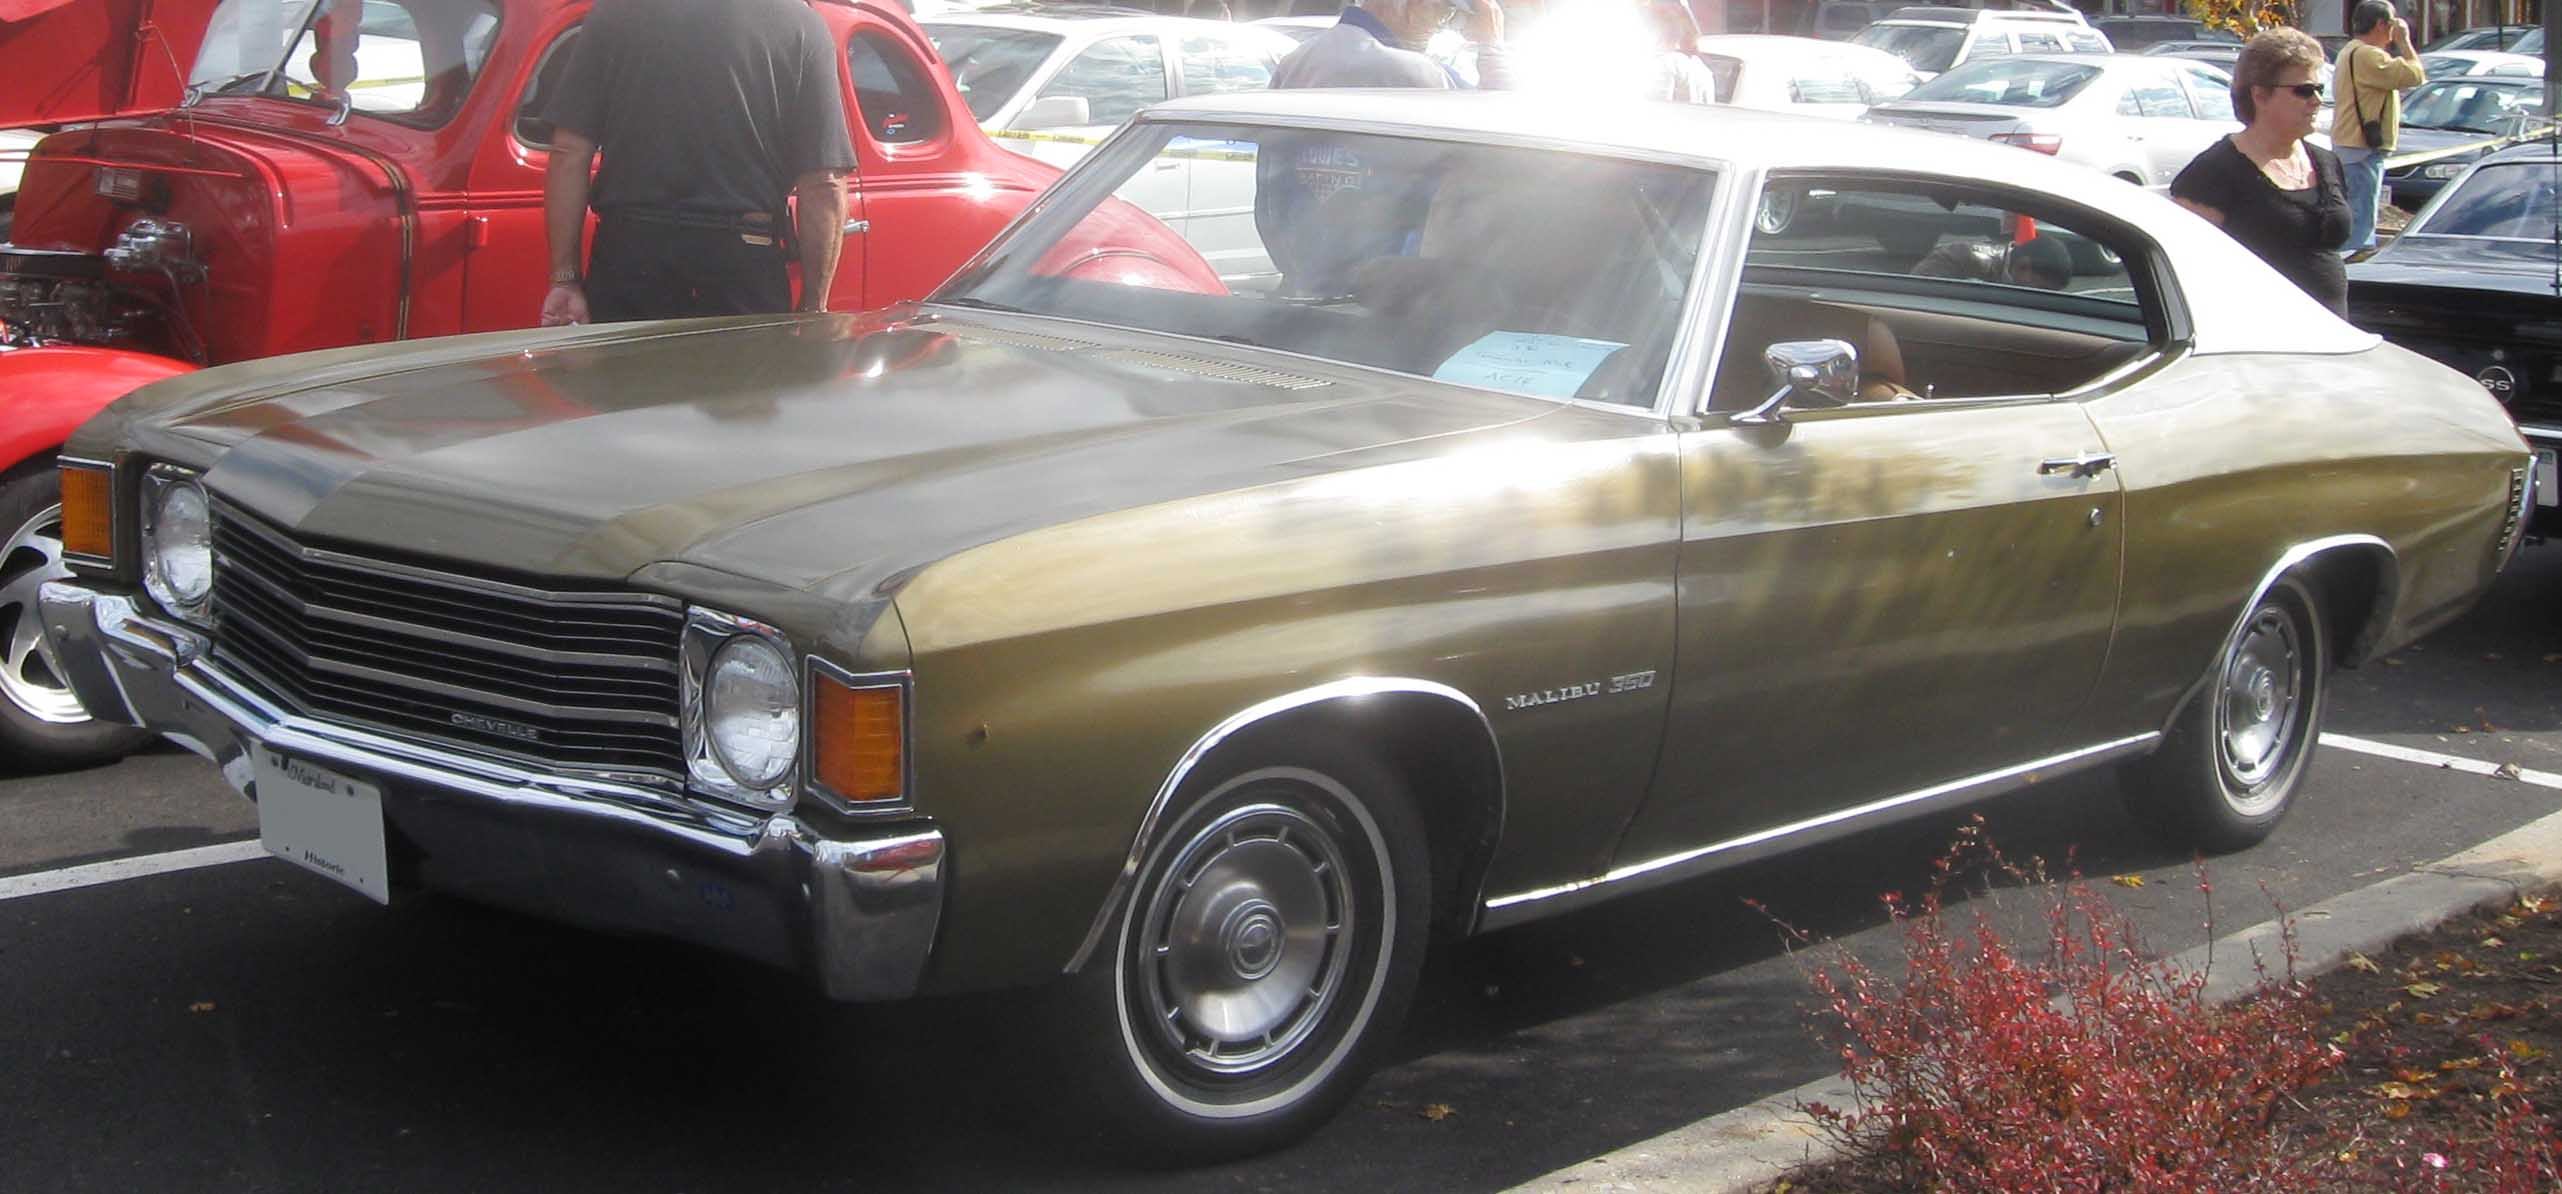 Watch in addition 1970 Chevrolet Chevelle Ss 5 in addition Sale additionally Ringbrothers Recoil Chevelle Is 1000 Hp Custom Masterpiece likewise 361830640895. on 1967 chevy chevelle ss